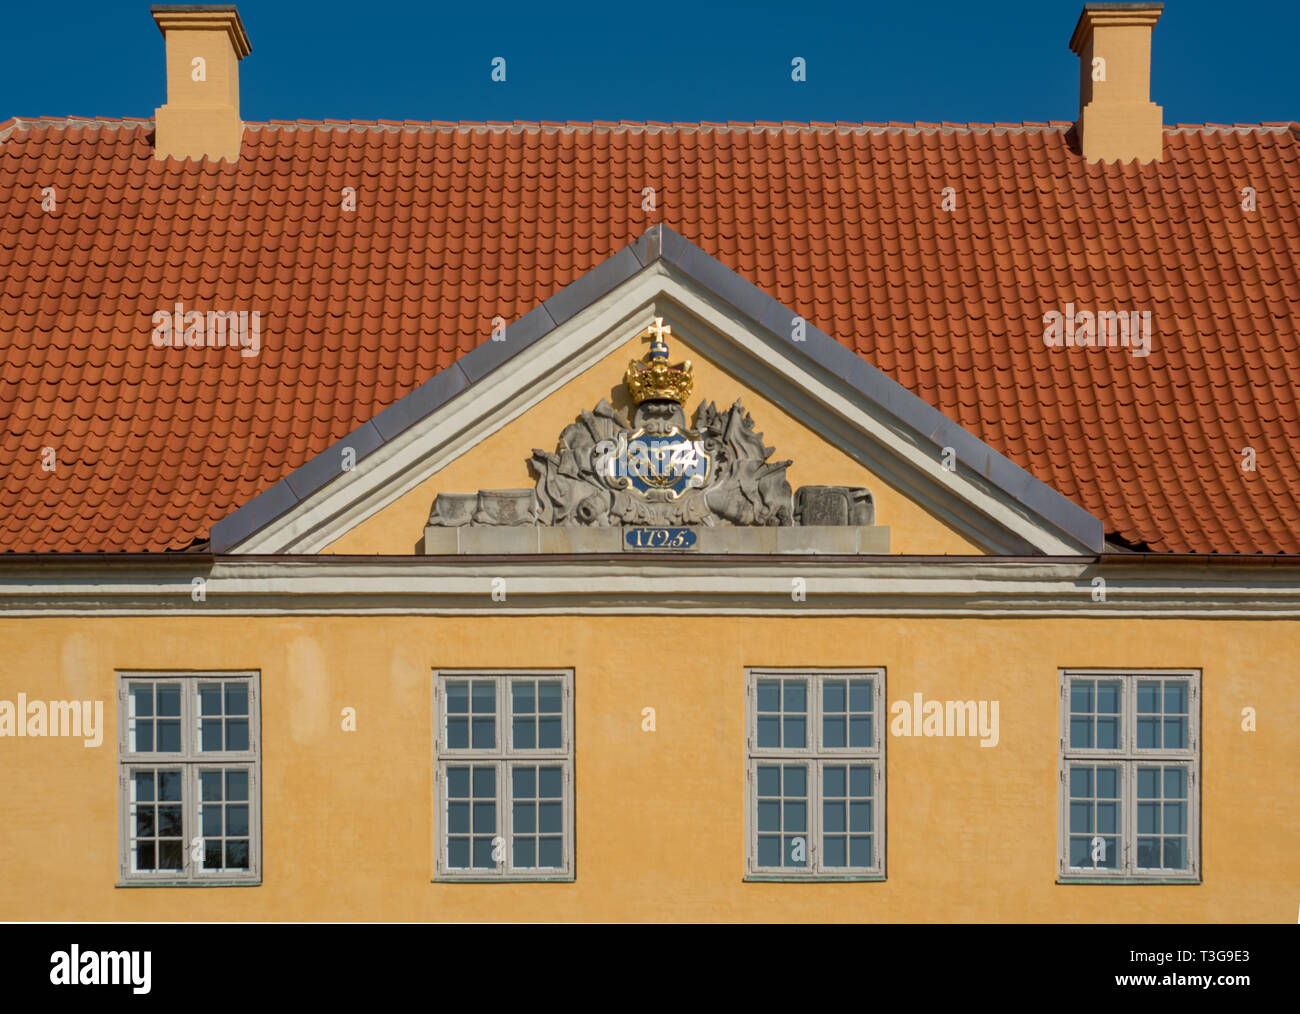 Detail of the pediment of the Commander's House in Kastellet, Copenhagen with Christian vII's monogram topped by a crown - Stock Image